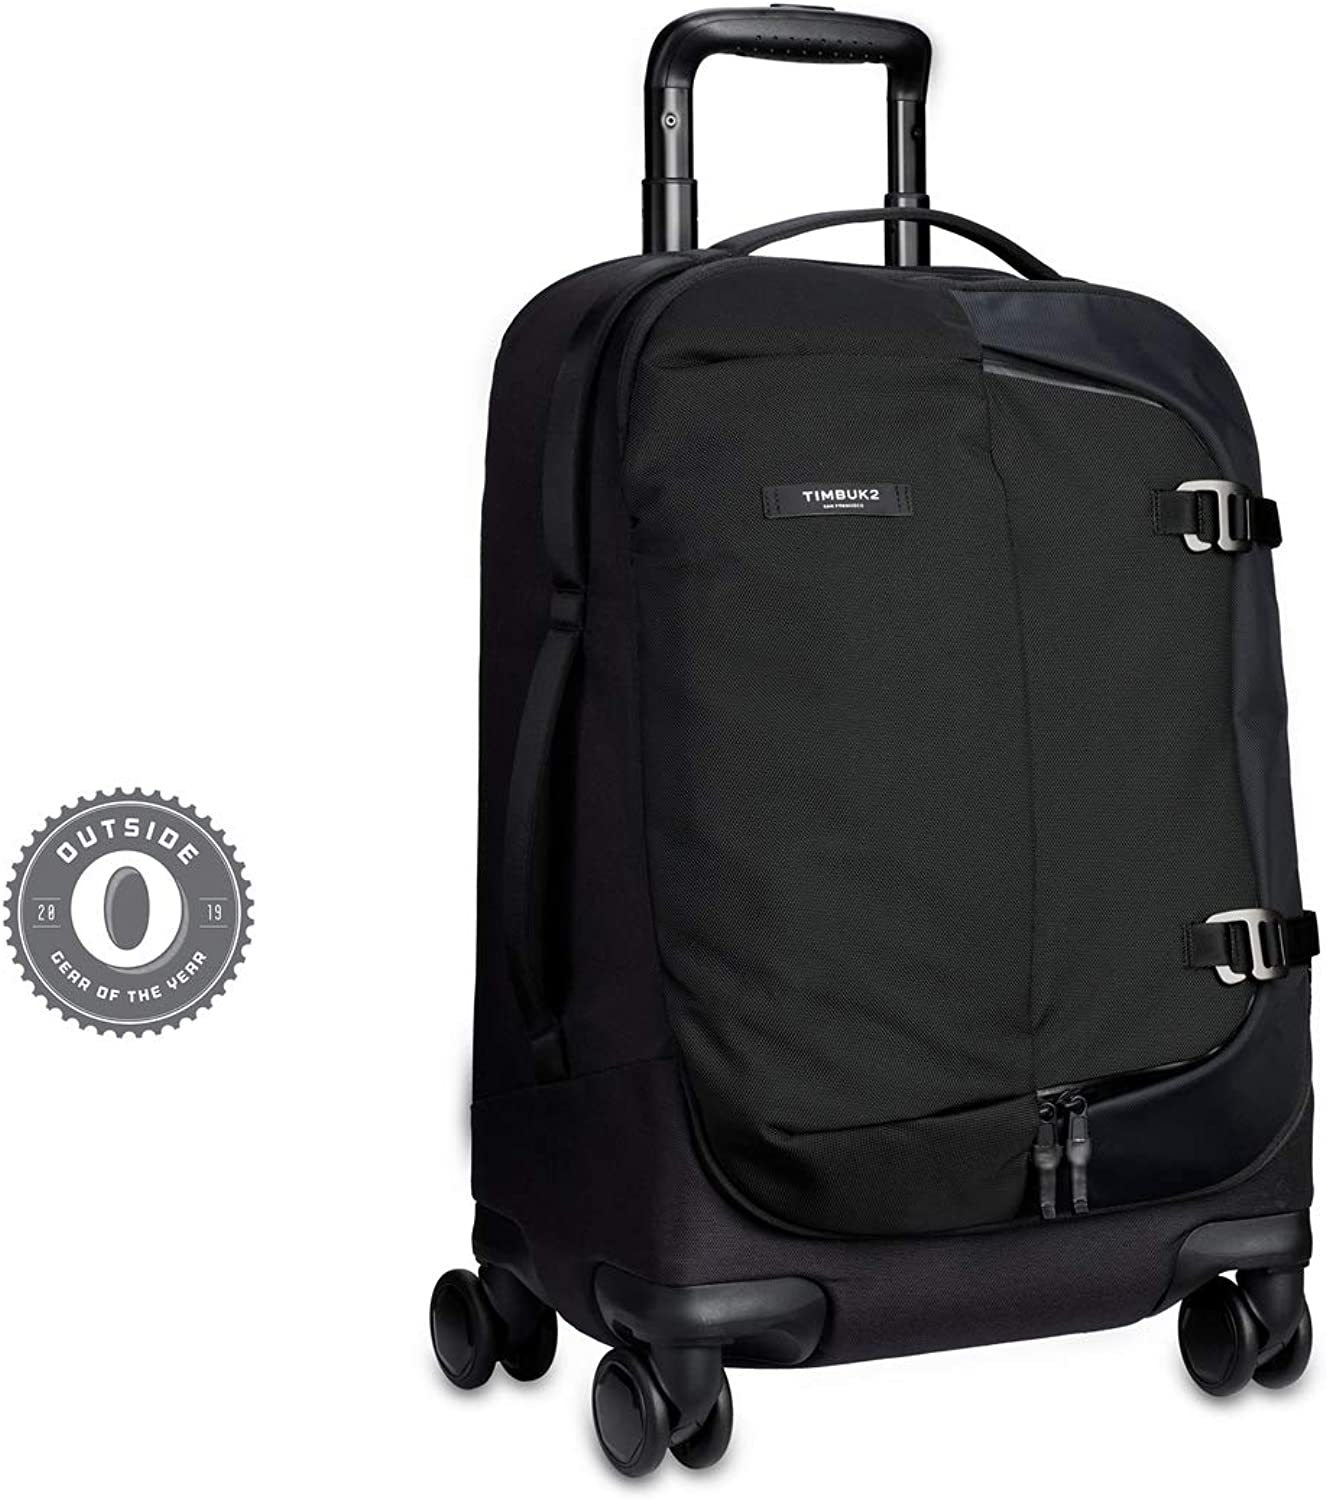 Timbuk2 Unisex Never Check 22 Spinner